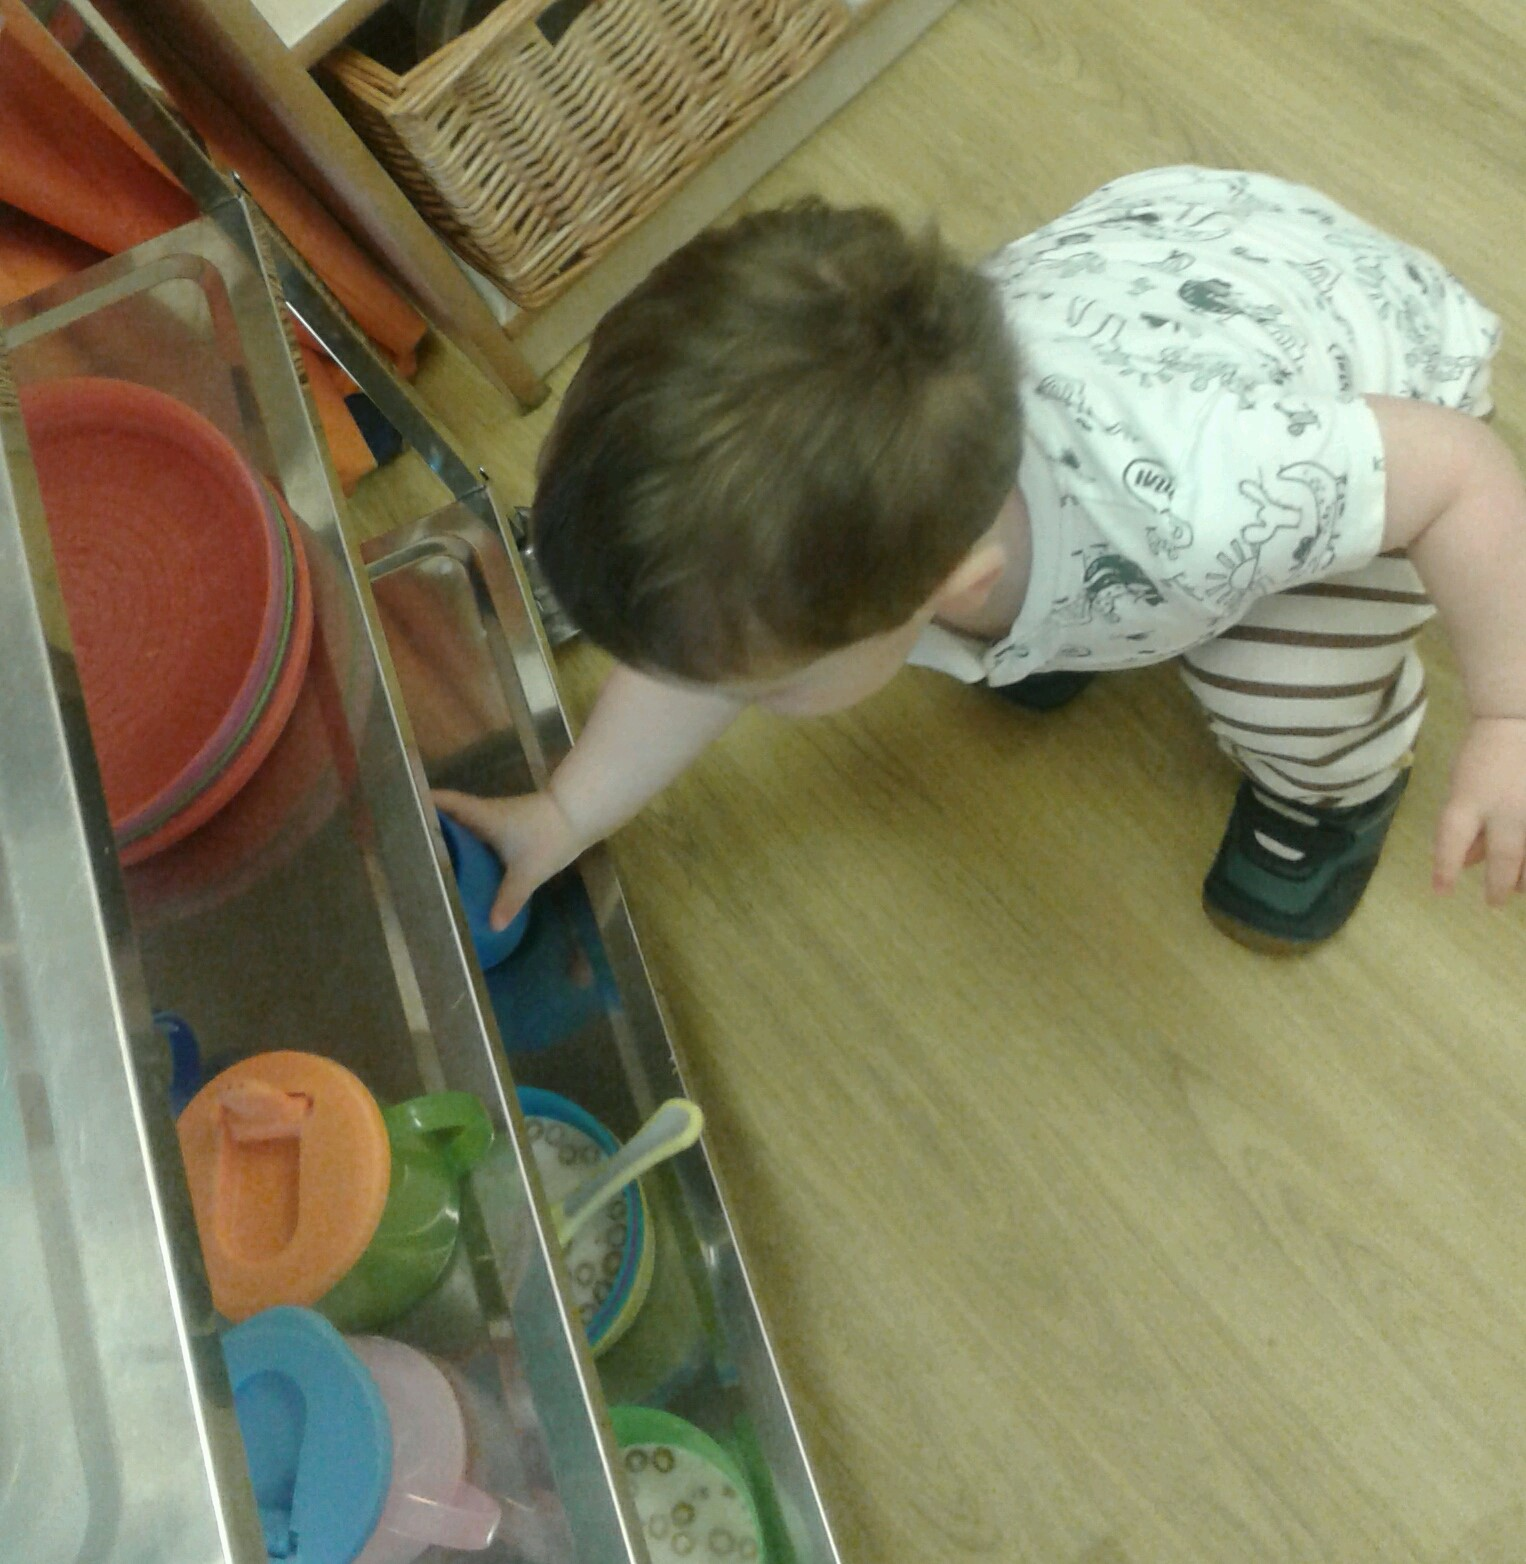 The Toddlers really love making choices and telling us what they would like to eat or do!